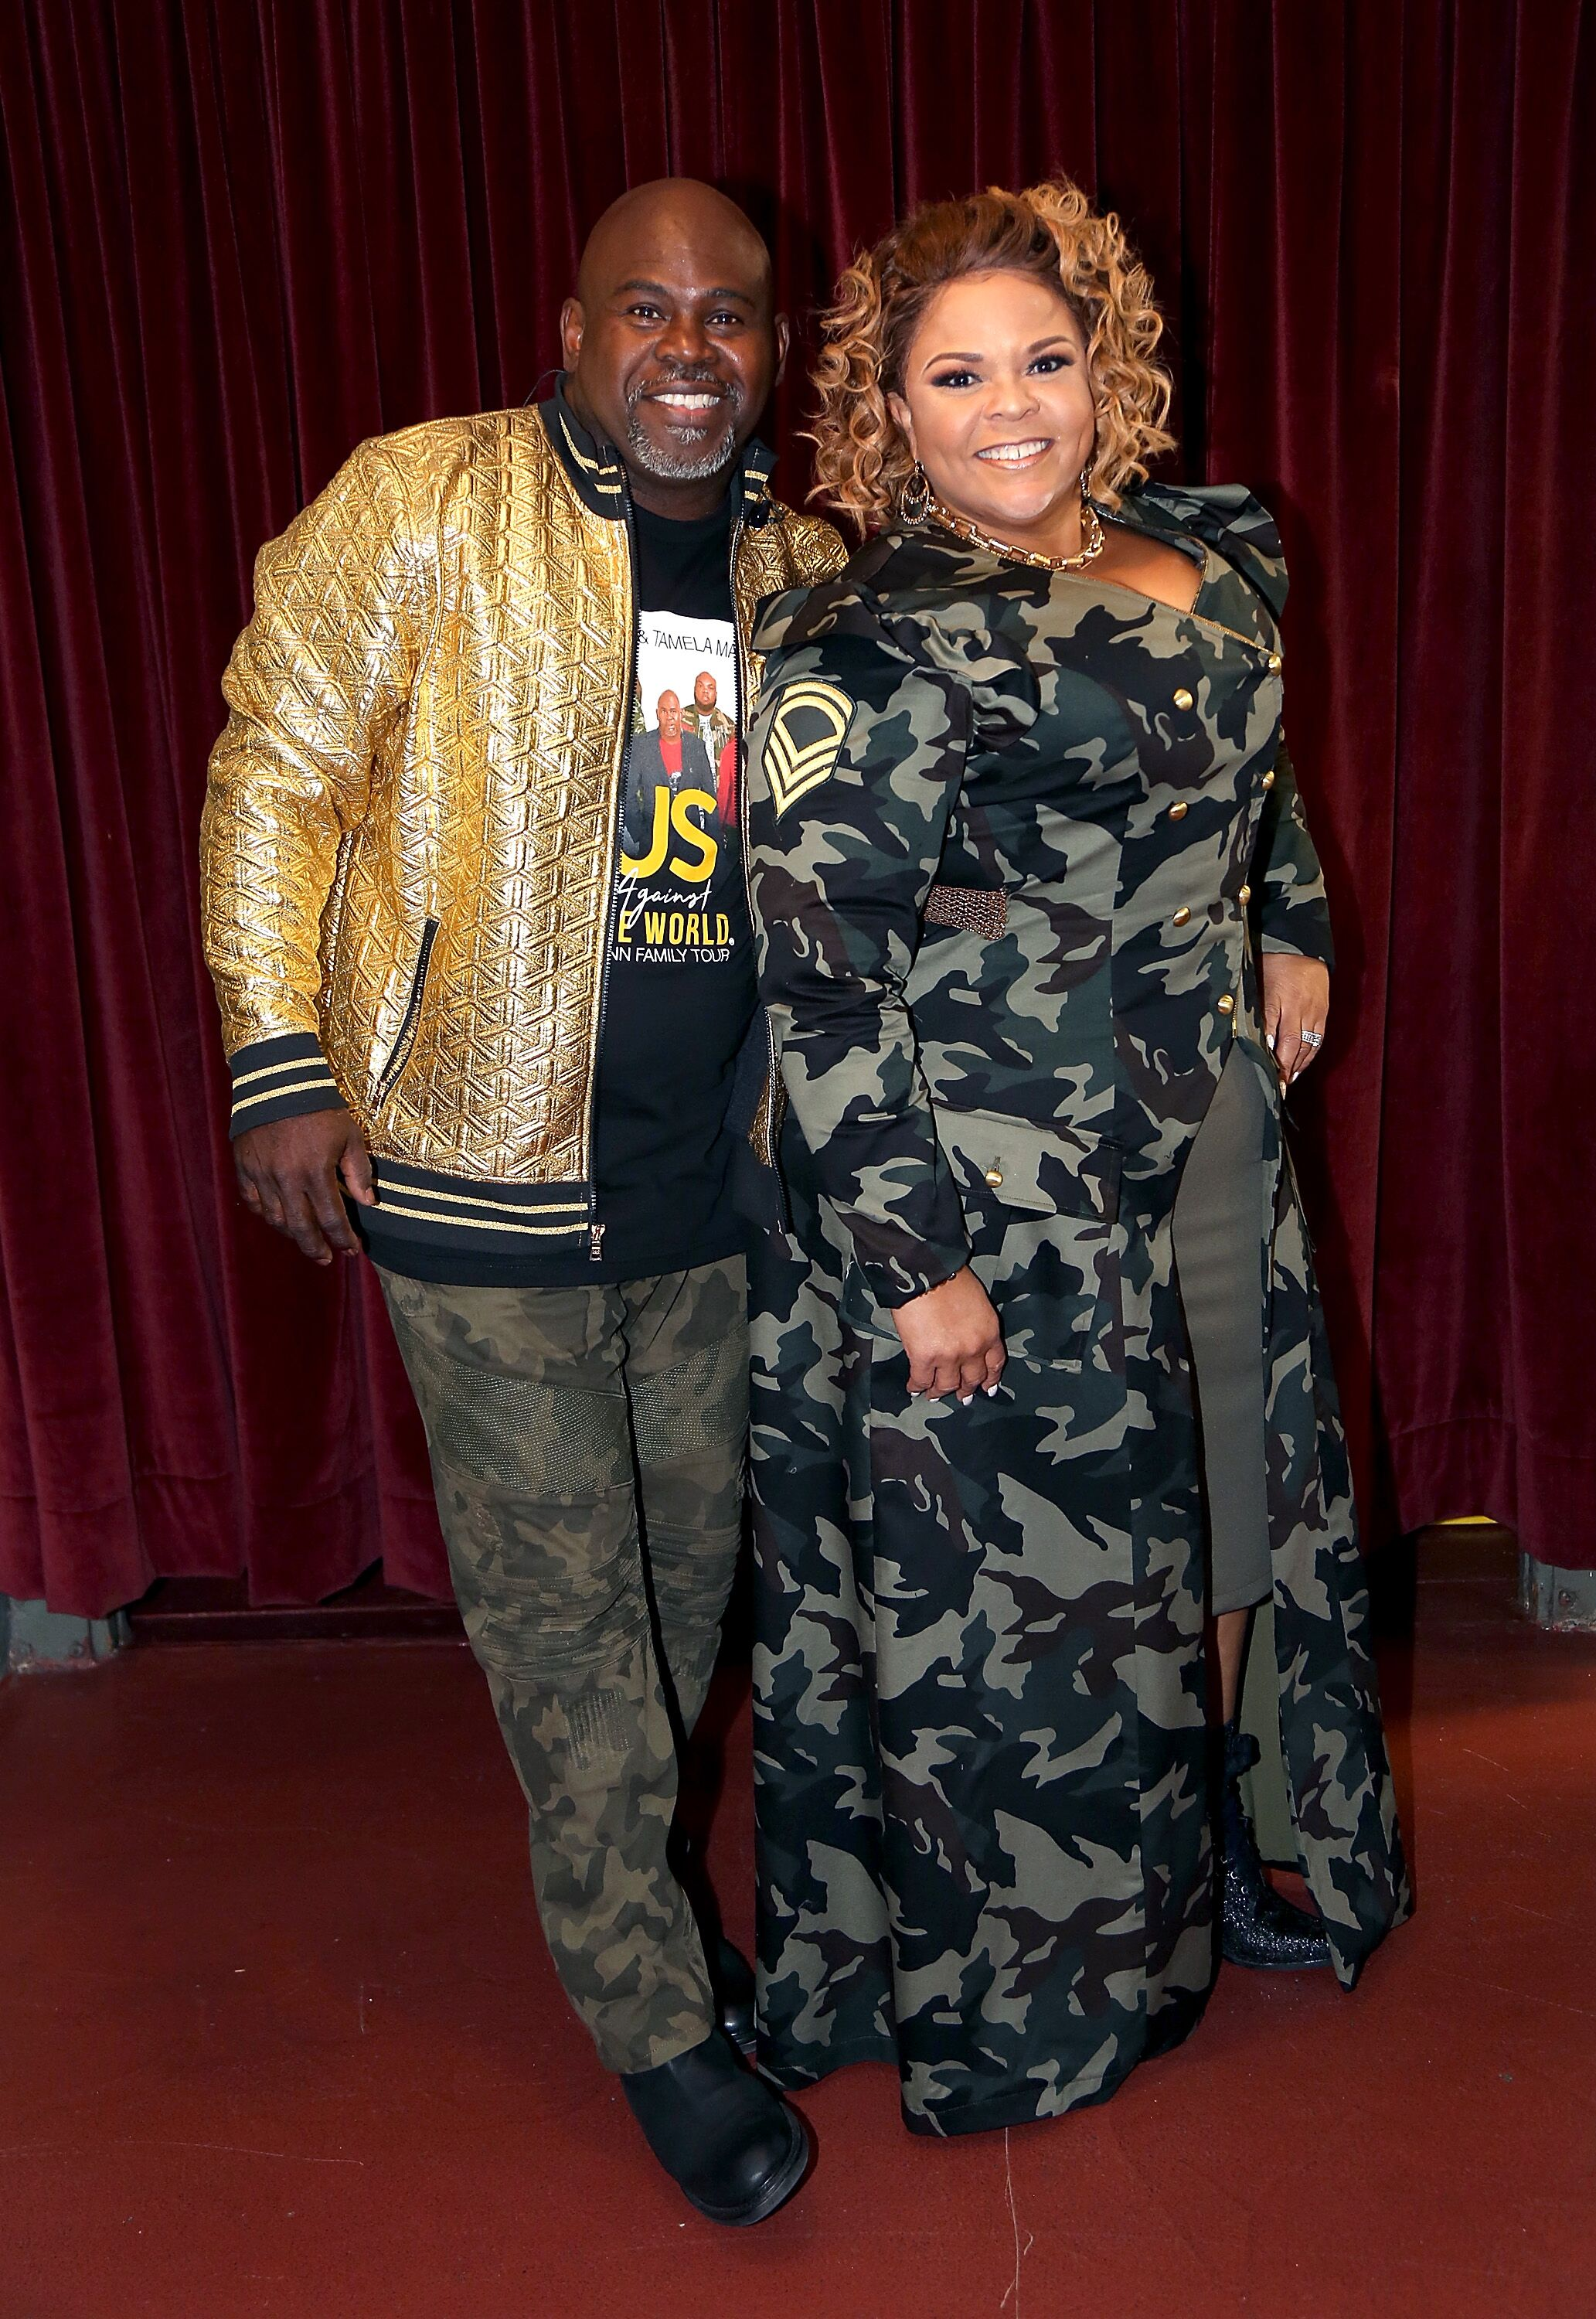 """Tamela and David Munn promoting their joint album """"Us Against the World""""  